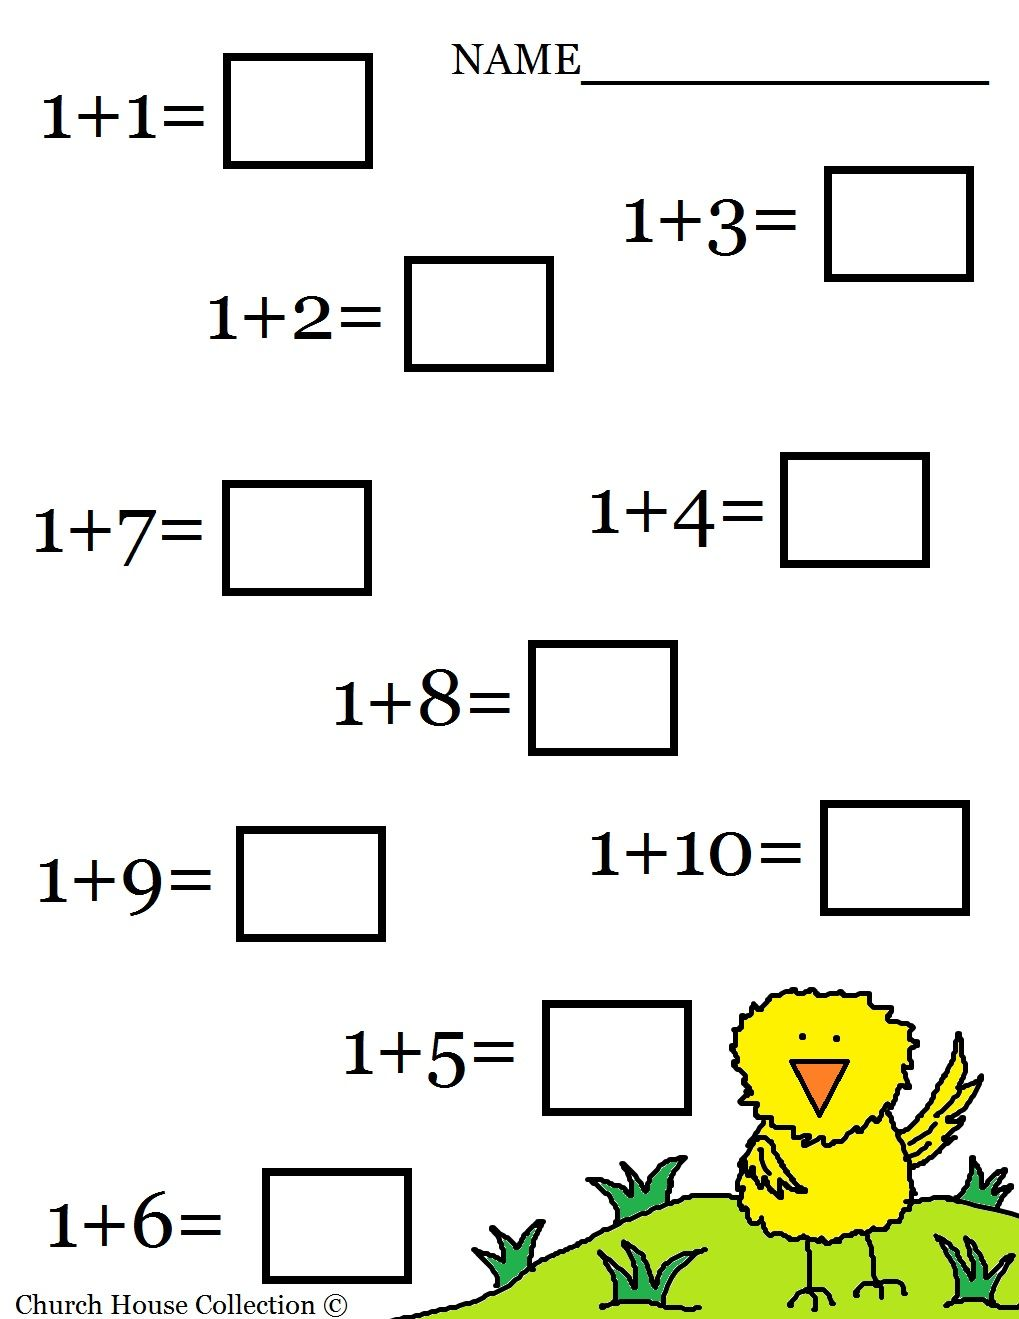 Aldiablosus  Terrific  Images About Worksheets  Math On Pinterest  Math Sheets  With Extraordinary  Images About Worksheets  Math On Pinterest  Math Sheets Math Worksheets For Kindergarten And Simple Addition With Amazing Worksheet Builder Also Inequality Practice Worksheets In Addition Household Budget Worksheet Pdf And Budget Worksheet For Kids As Well As Pov Worksheets Additionally Change Of State Worksheet From Pinterestcom With Aldiablosus  Extraordinary  Images About Worksheets  Math On Pinterest  Math Sheets  With Amazing  Images About Worksheets  Math On Pinterest  Math Sheets Math Worksheets For Kindergarten And Simple Addition And Terrific Worksheet Builder Also Inequality Practice Worksheets In Addition Household Budget Worksheet Pdf From Pinterestcom